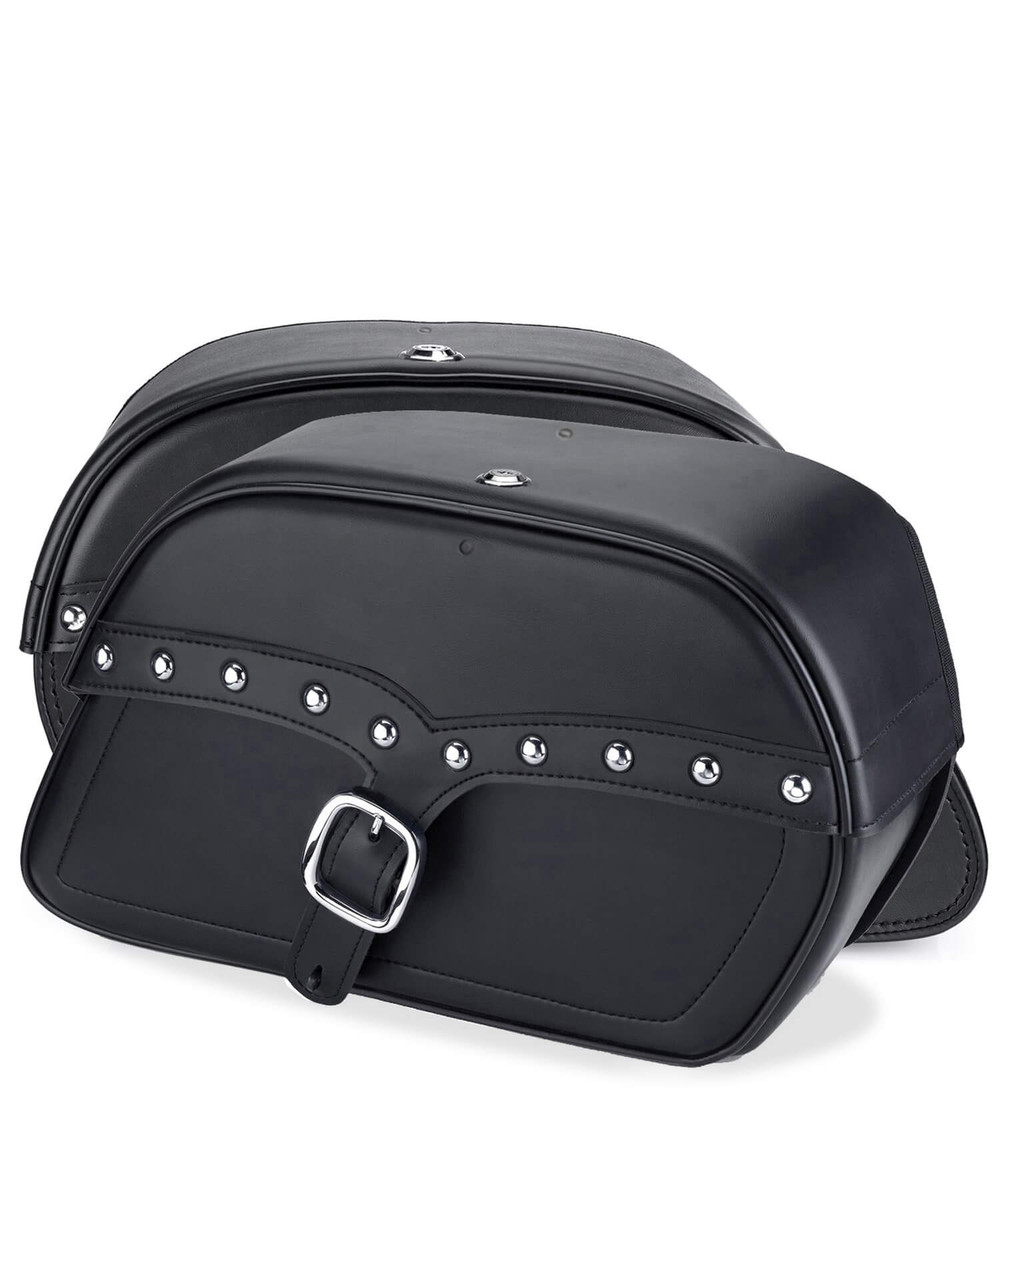 Honda 1500 Valkyrie Interstate Vikingbags Shock Cutout Single Strap Large Slanted Studded Leather Motorcycle Saddlebags Both Bags View